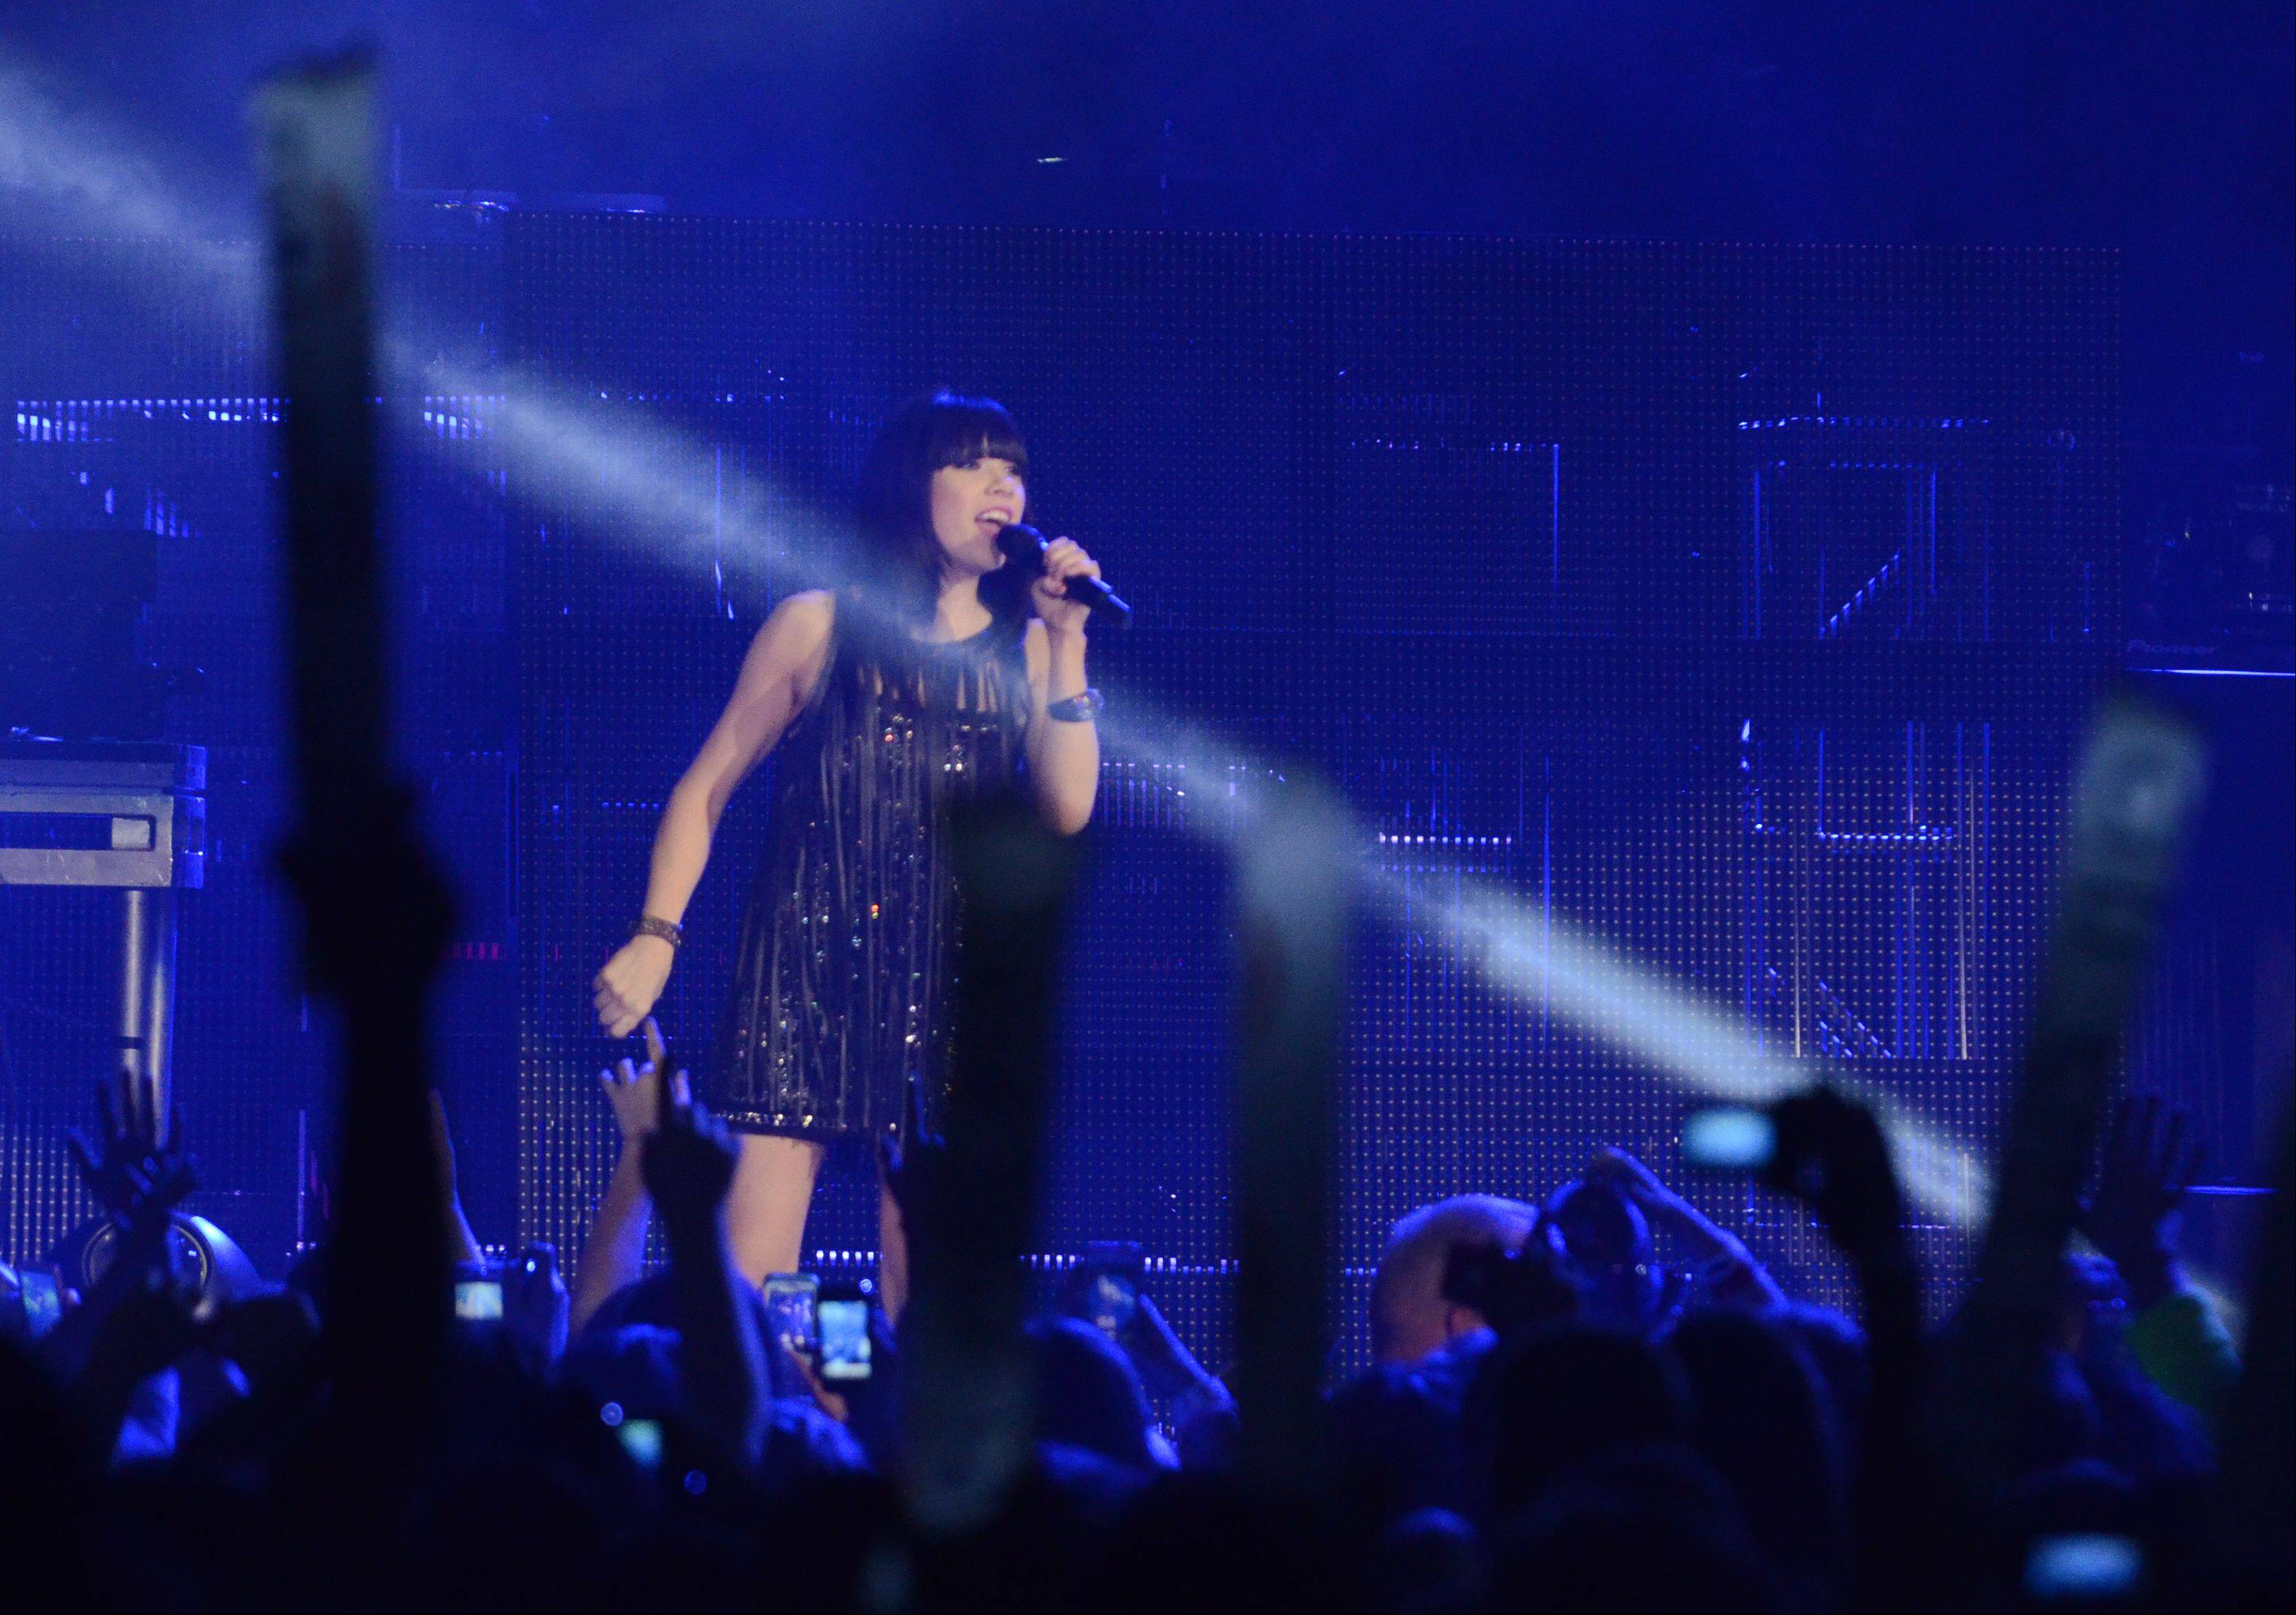 Carly Rae Jepsen performs during the Jingle Bash concert at the Allstate Arena in Rosemont on Saturday, December 15th, 2012.